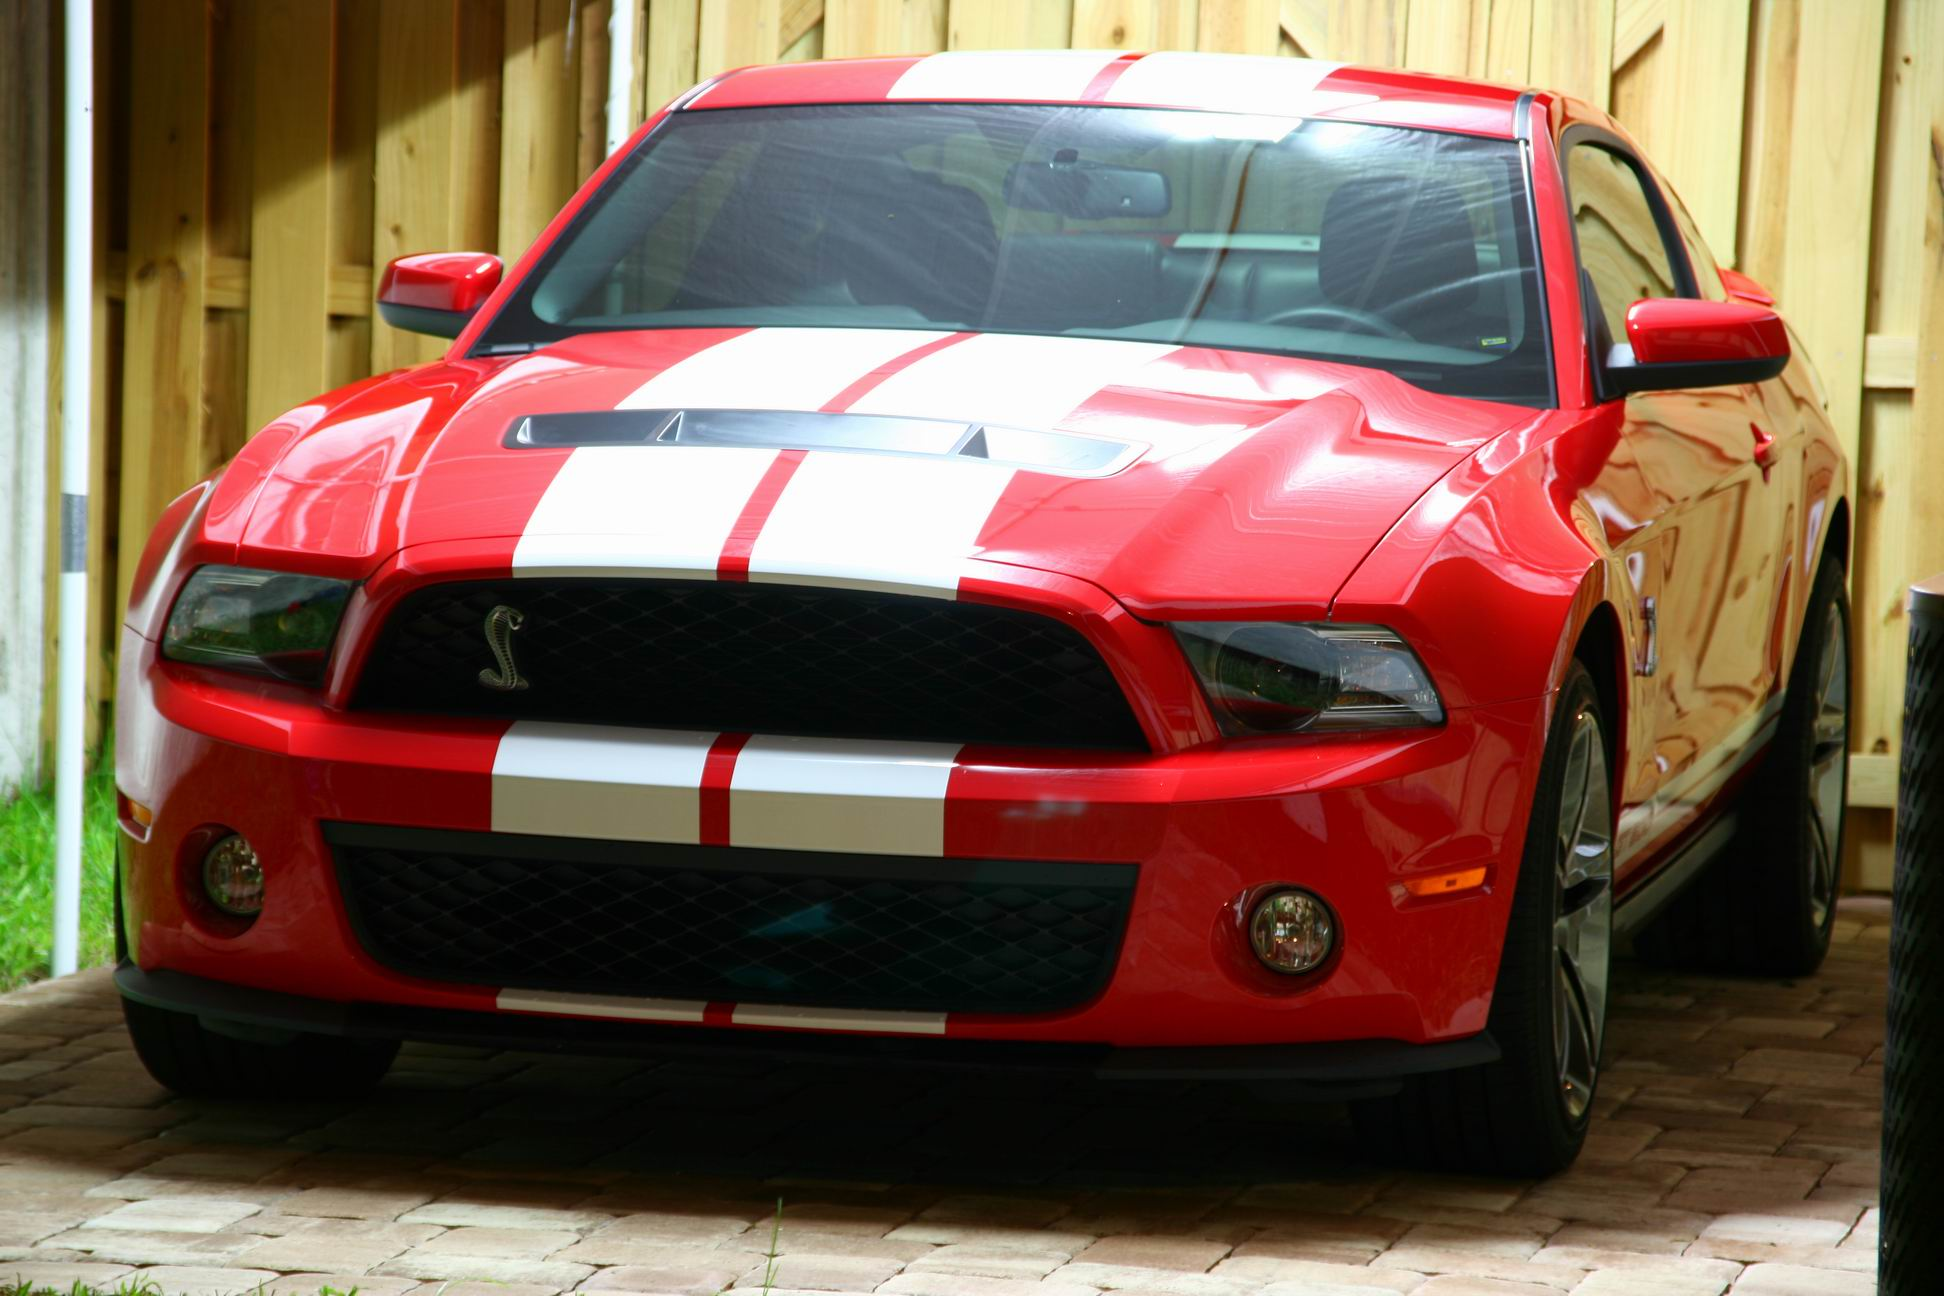 2010 Ford Mustang Shelby-GT500 1/8 mile Drag Racing ...